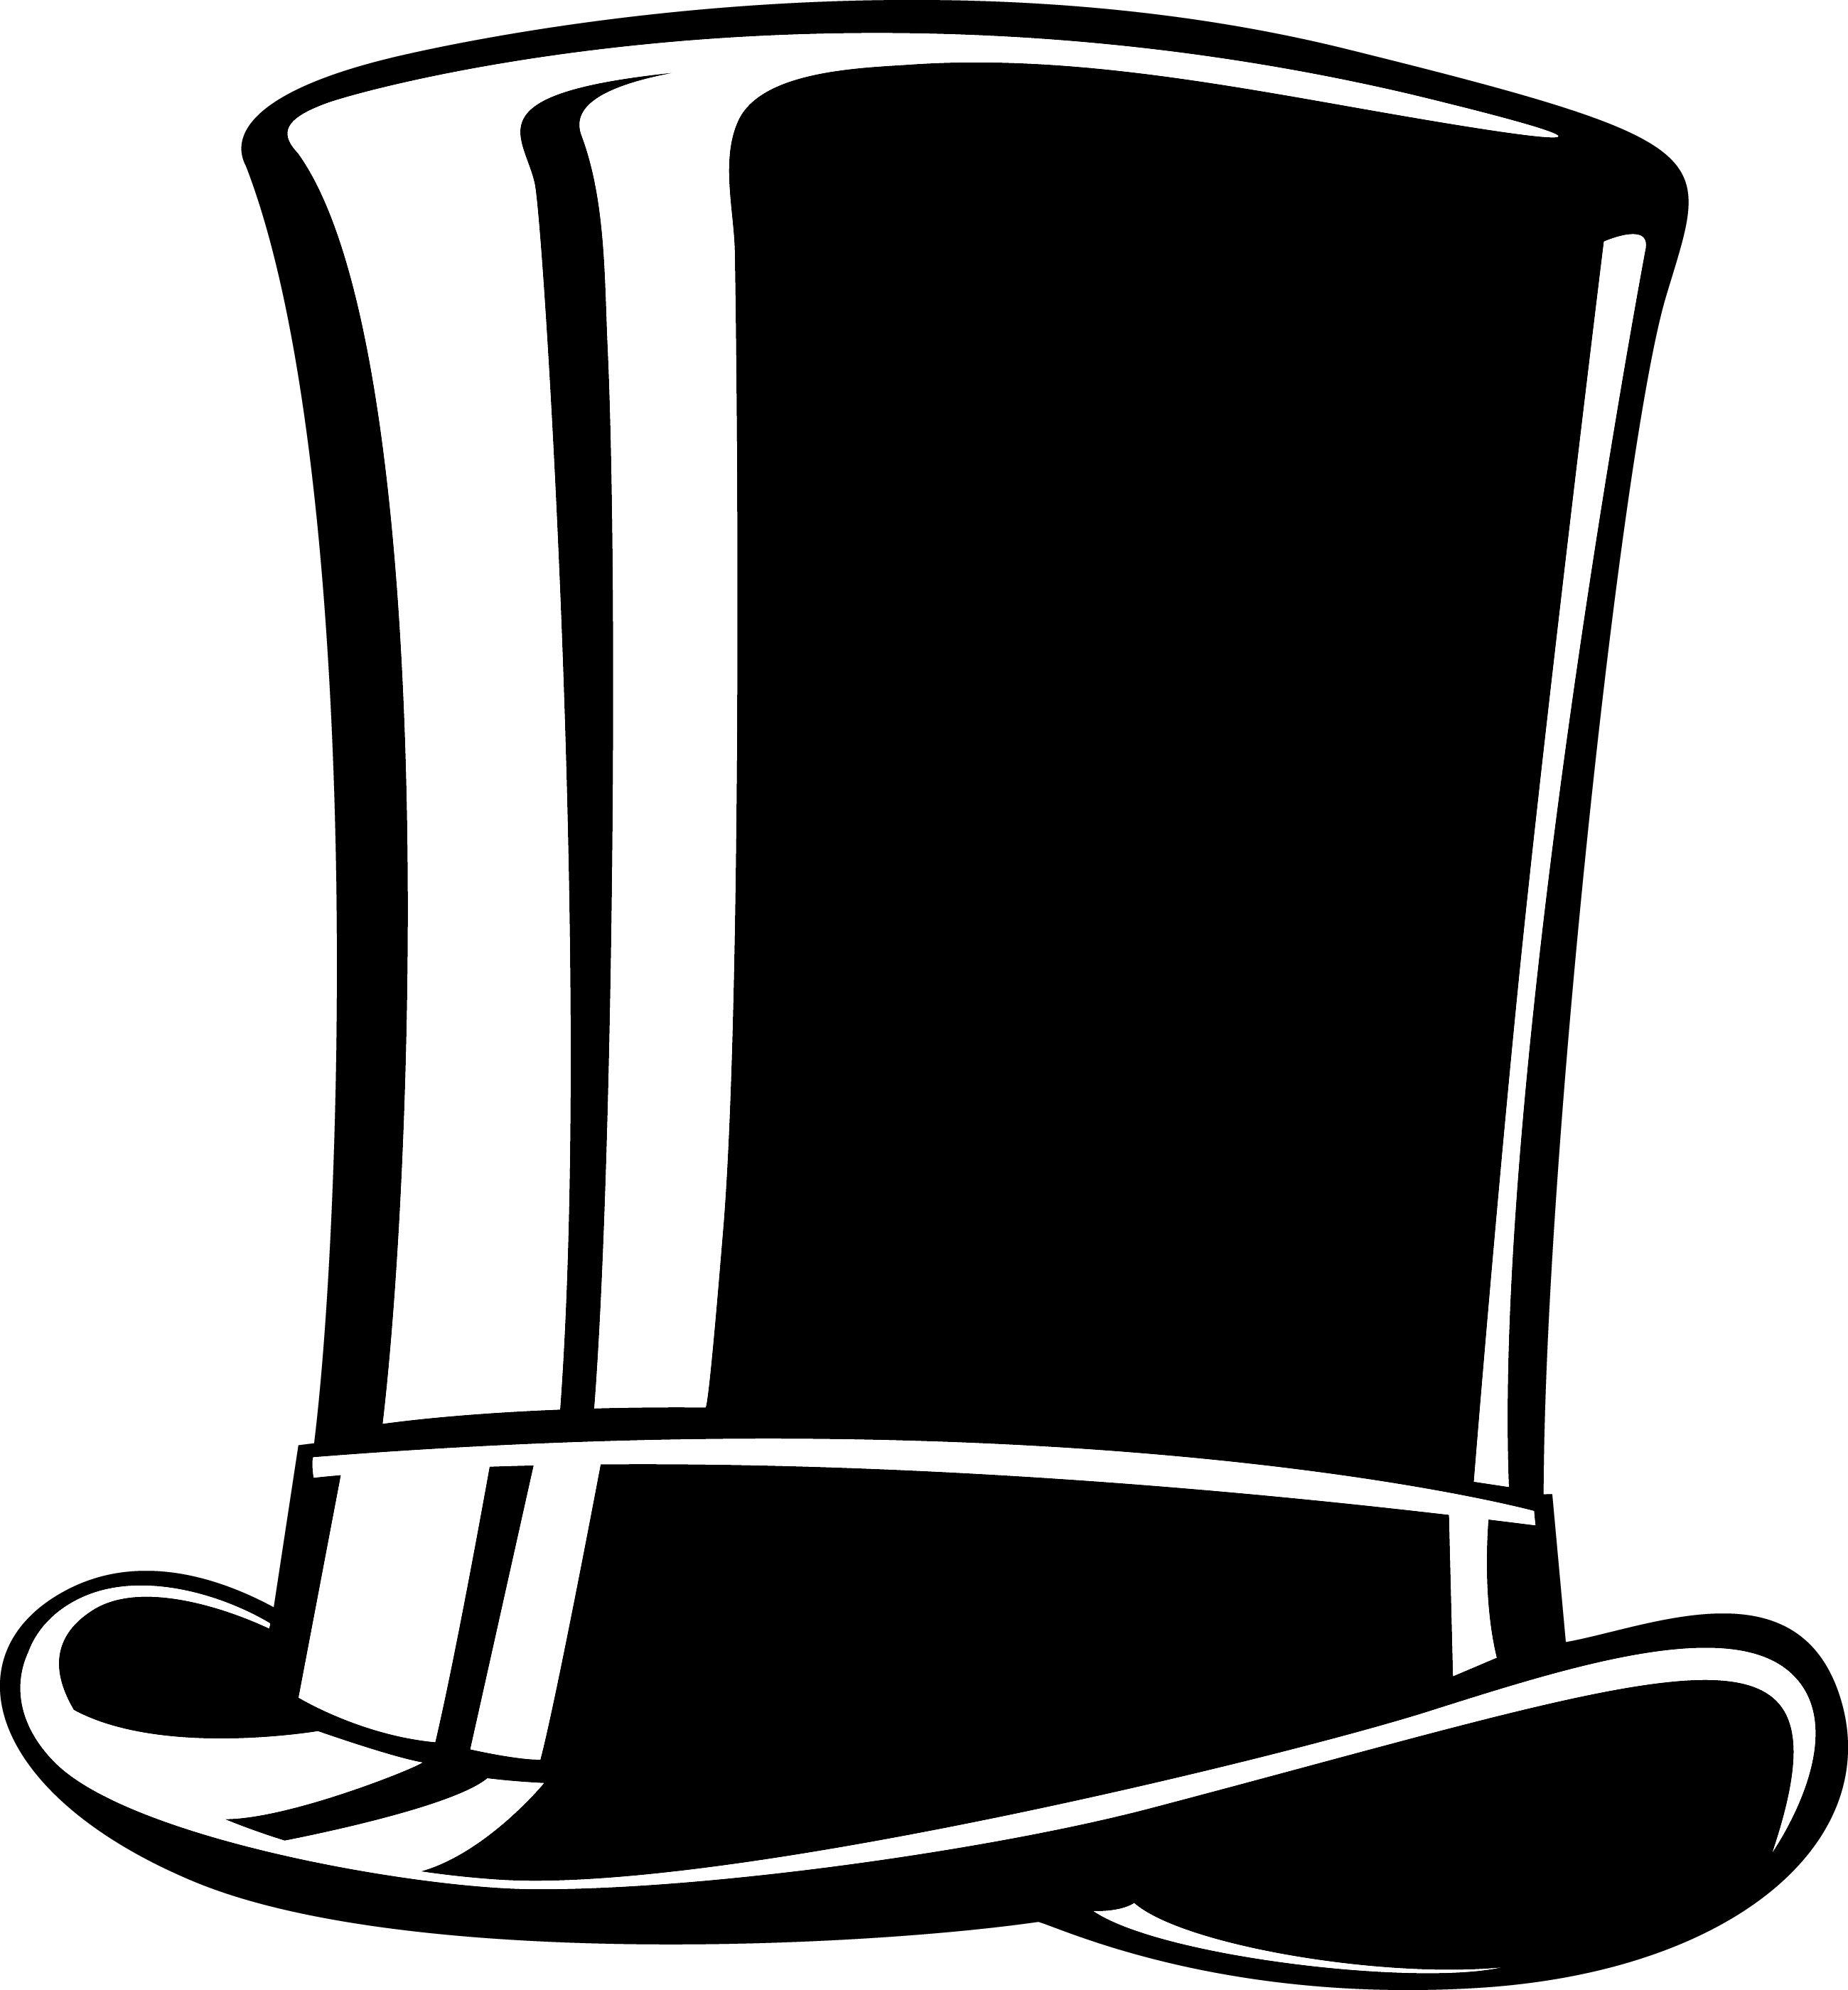 2334b5ee660 www.clipartkid.com images 173 top-hat-clipart-black-and